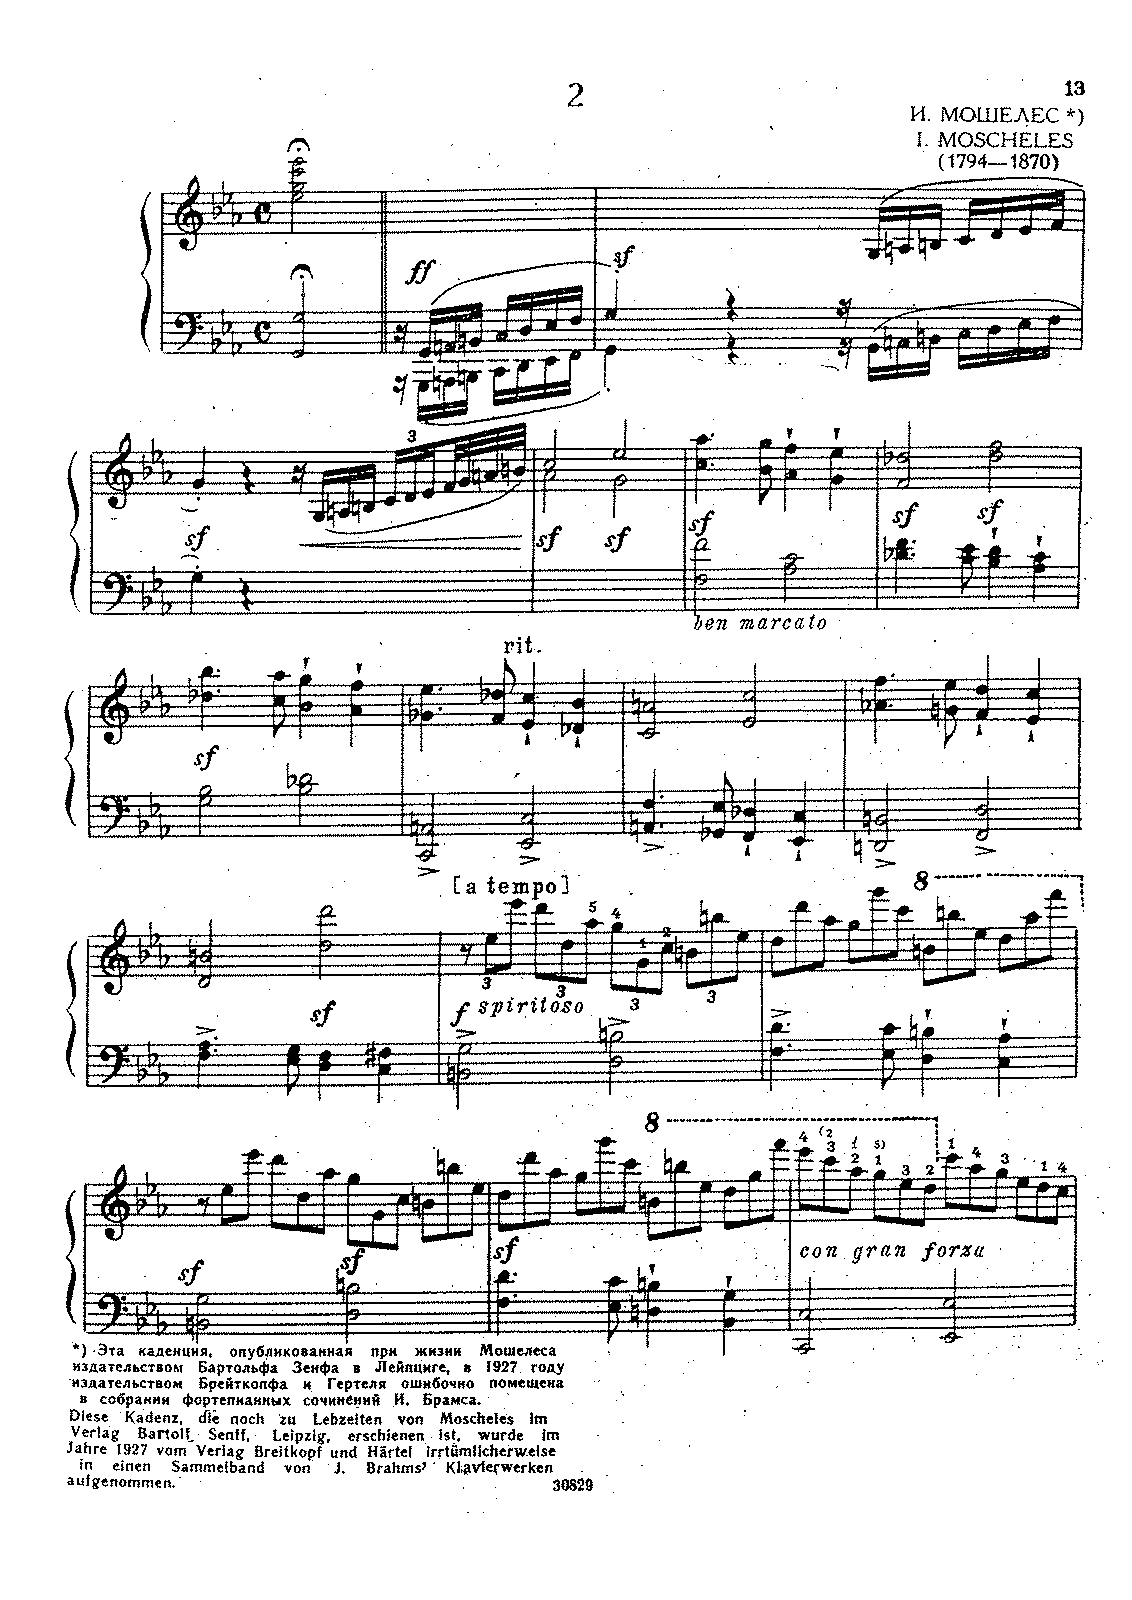 Beethoven-Moscheles Cadenza for Concerto -3 in c.pdf